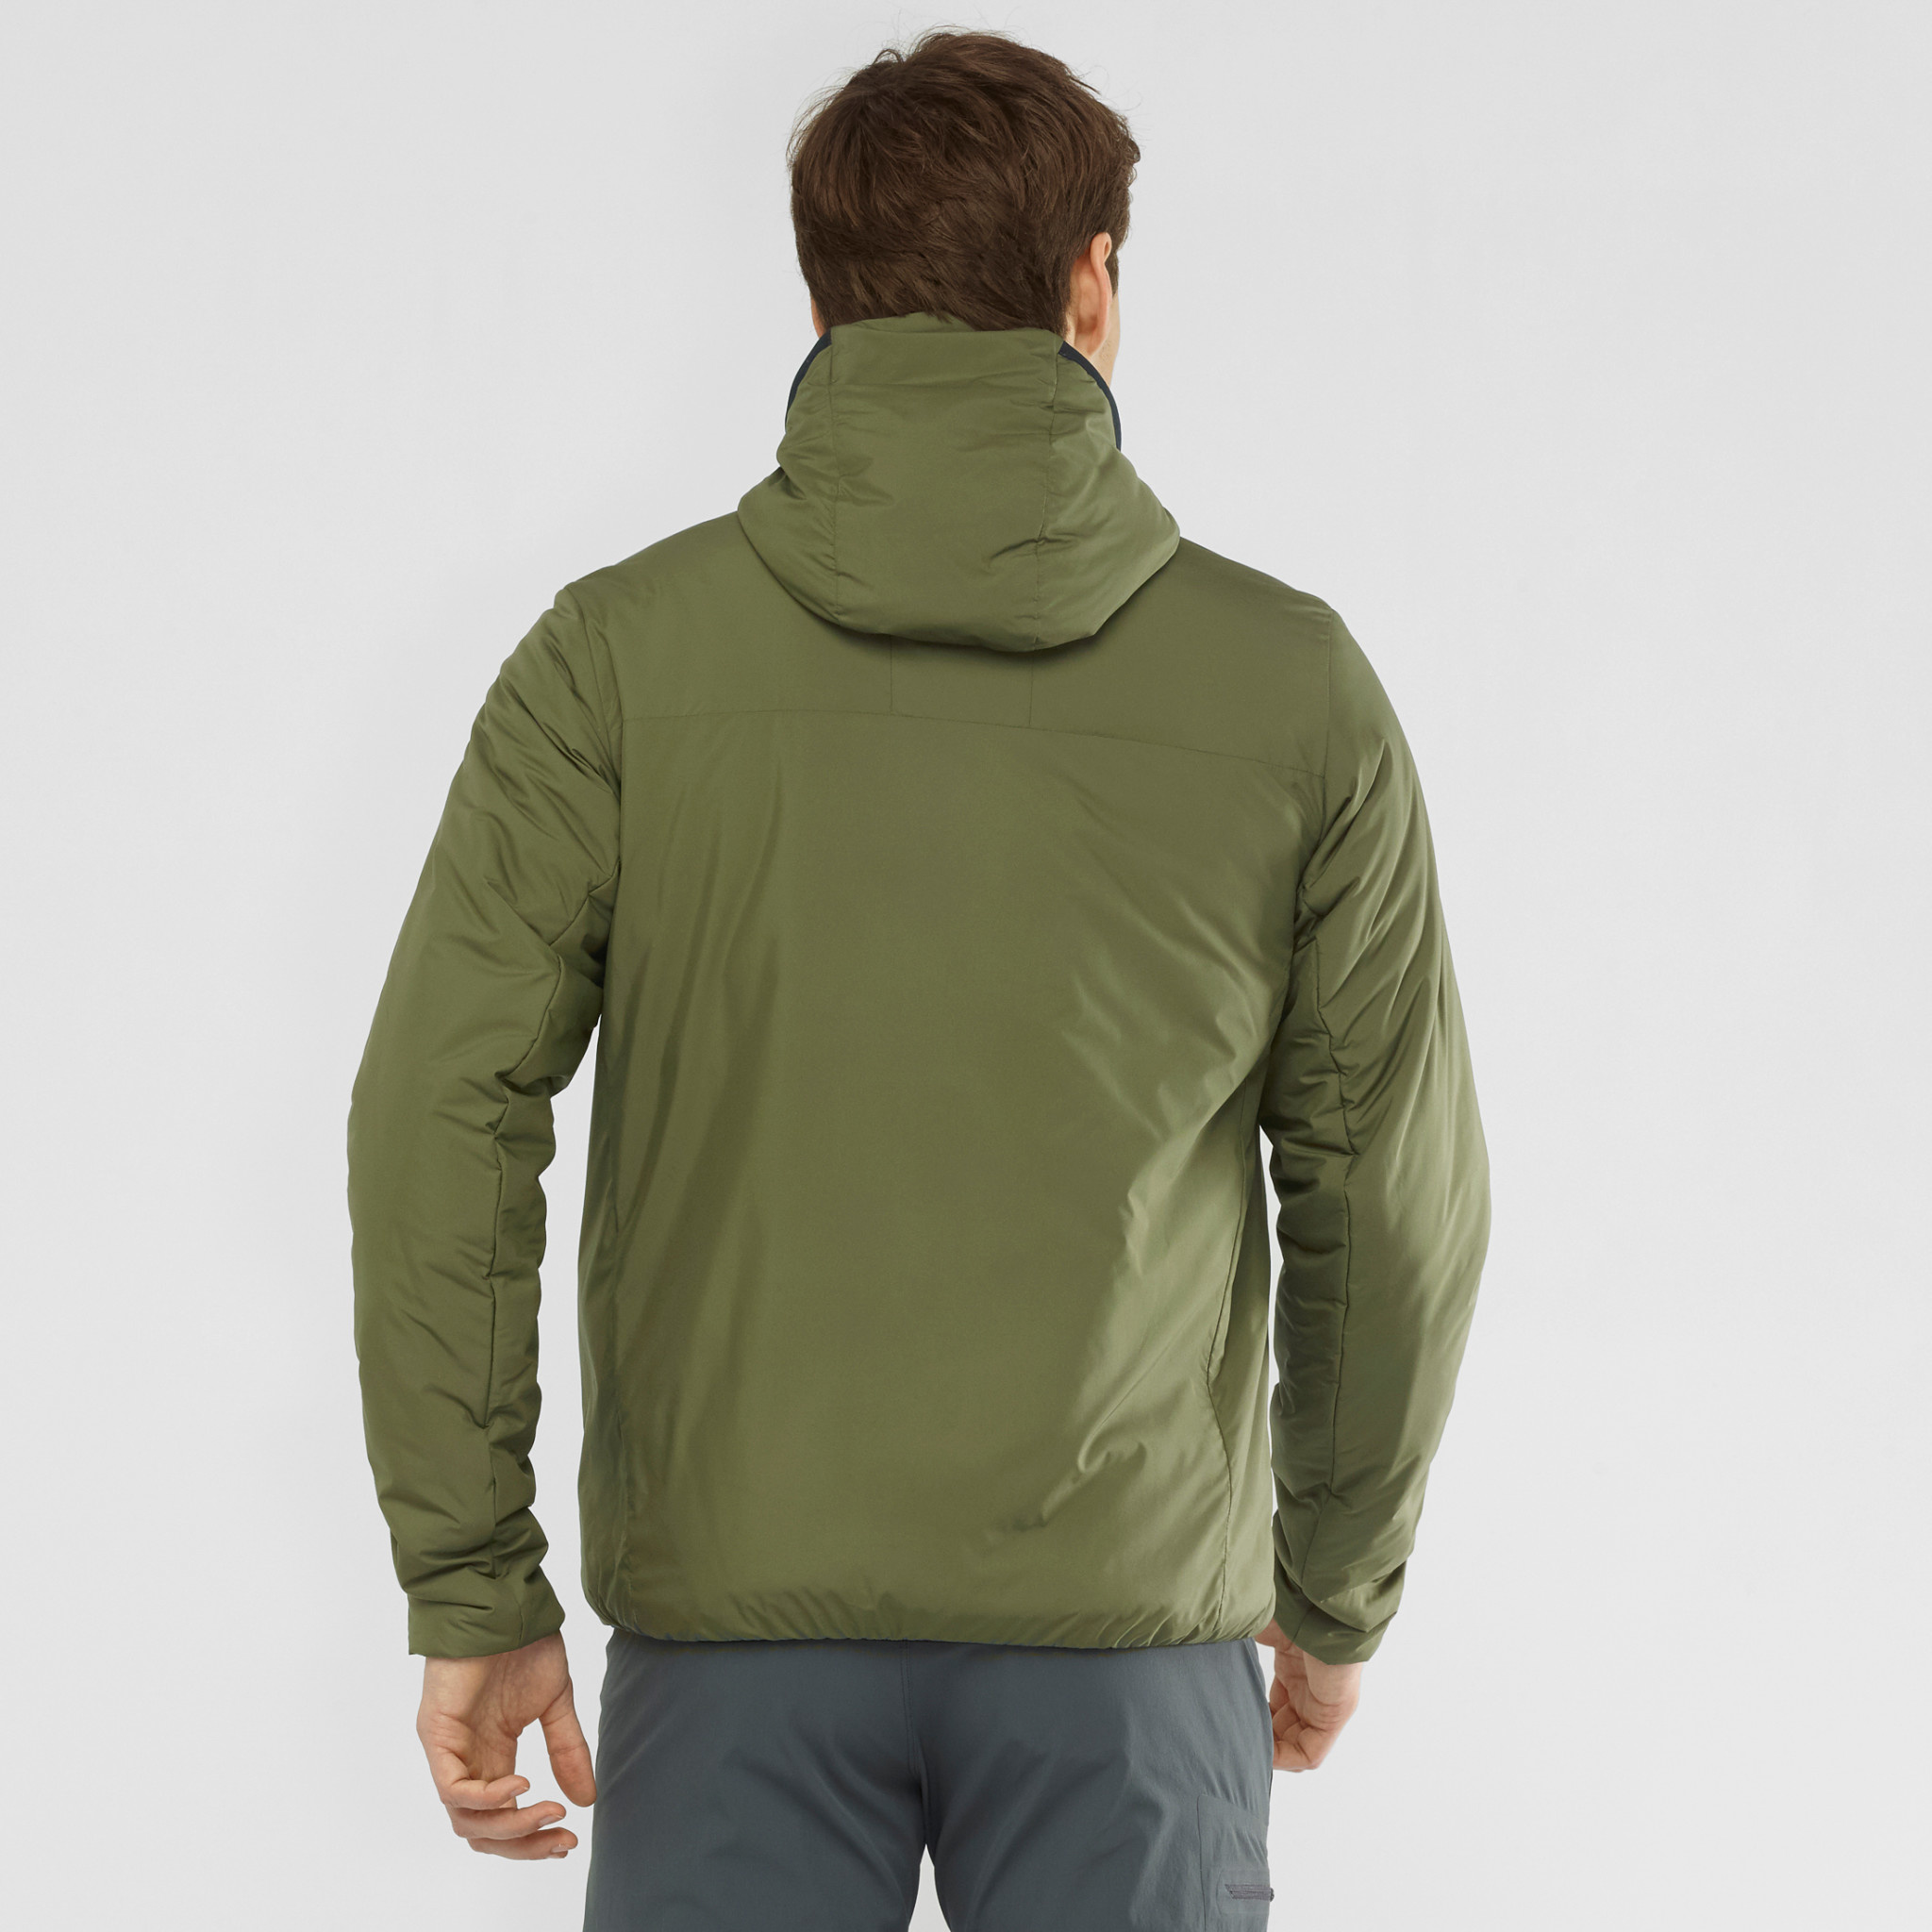 OUTRACK INSULATED HOODIE M-10